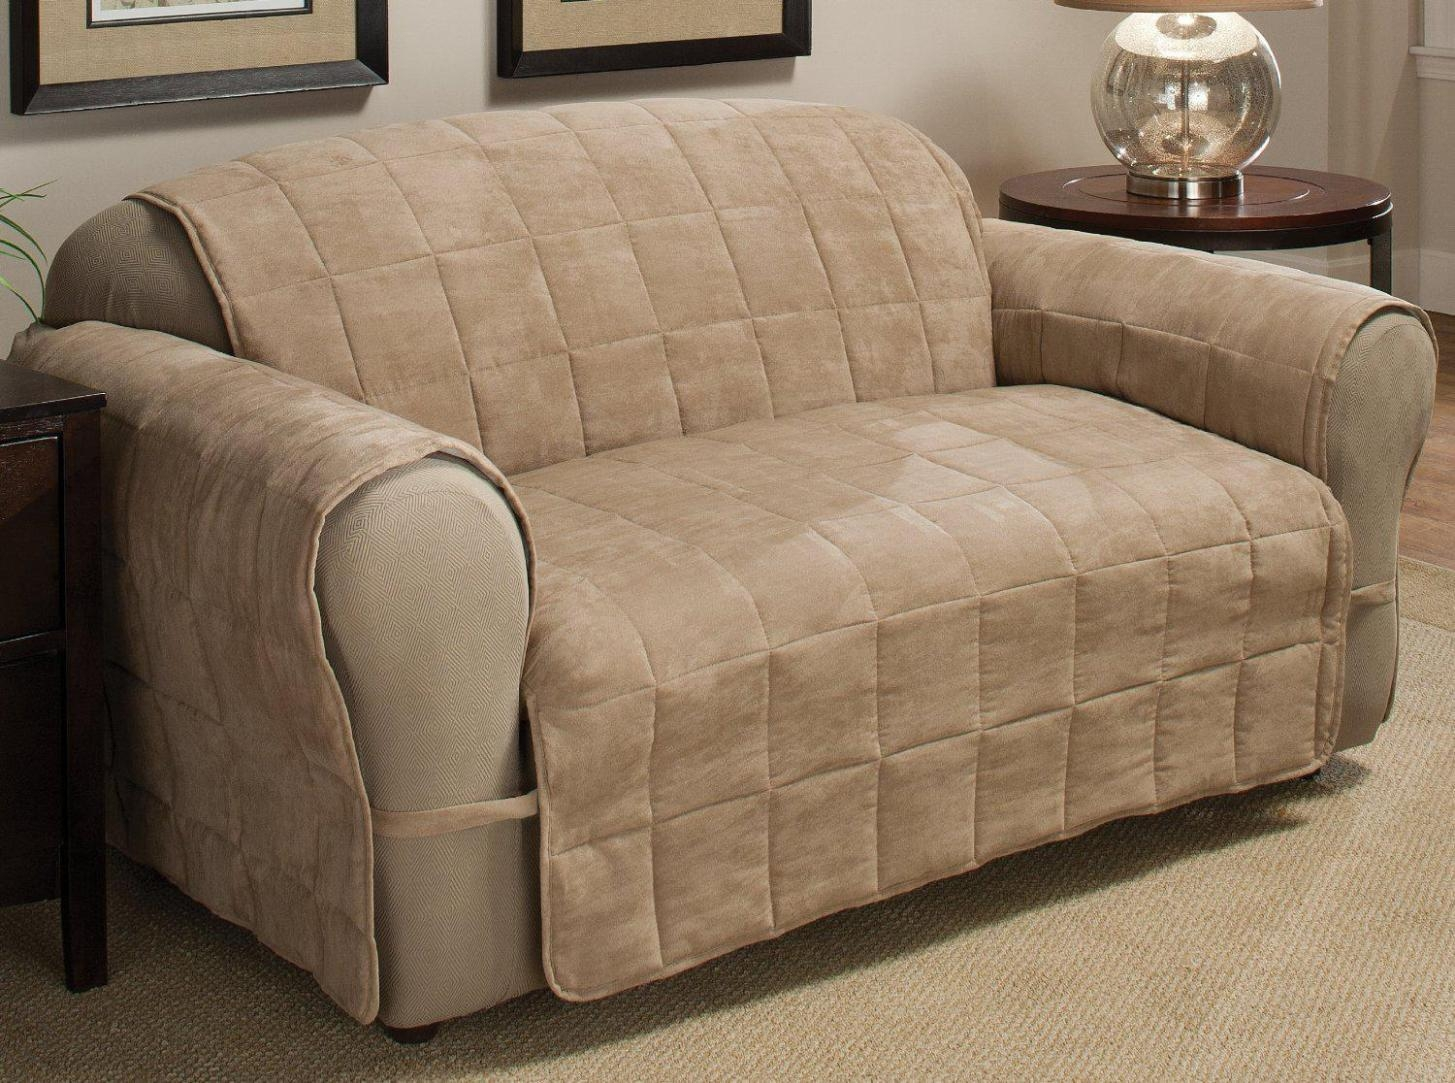 Furniture & Rug: Recliner Covers | Lazy Boy Recliner Cover | Slip Throughout Sofa And Chair Slipcovers (View 12 of 20)